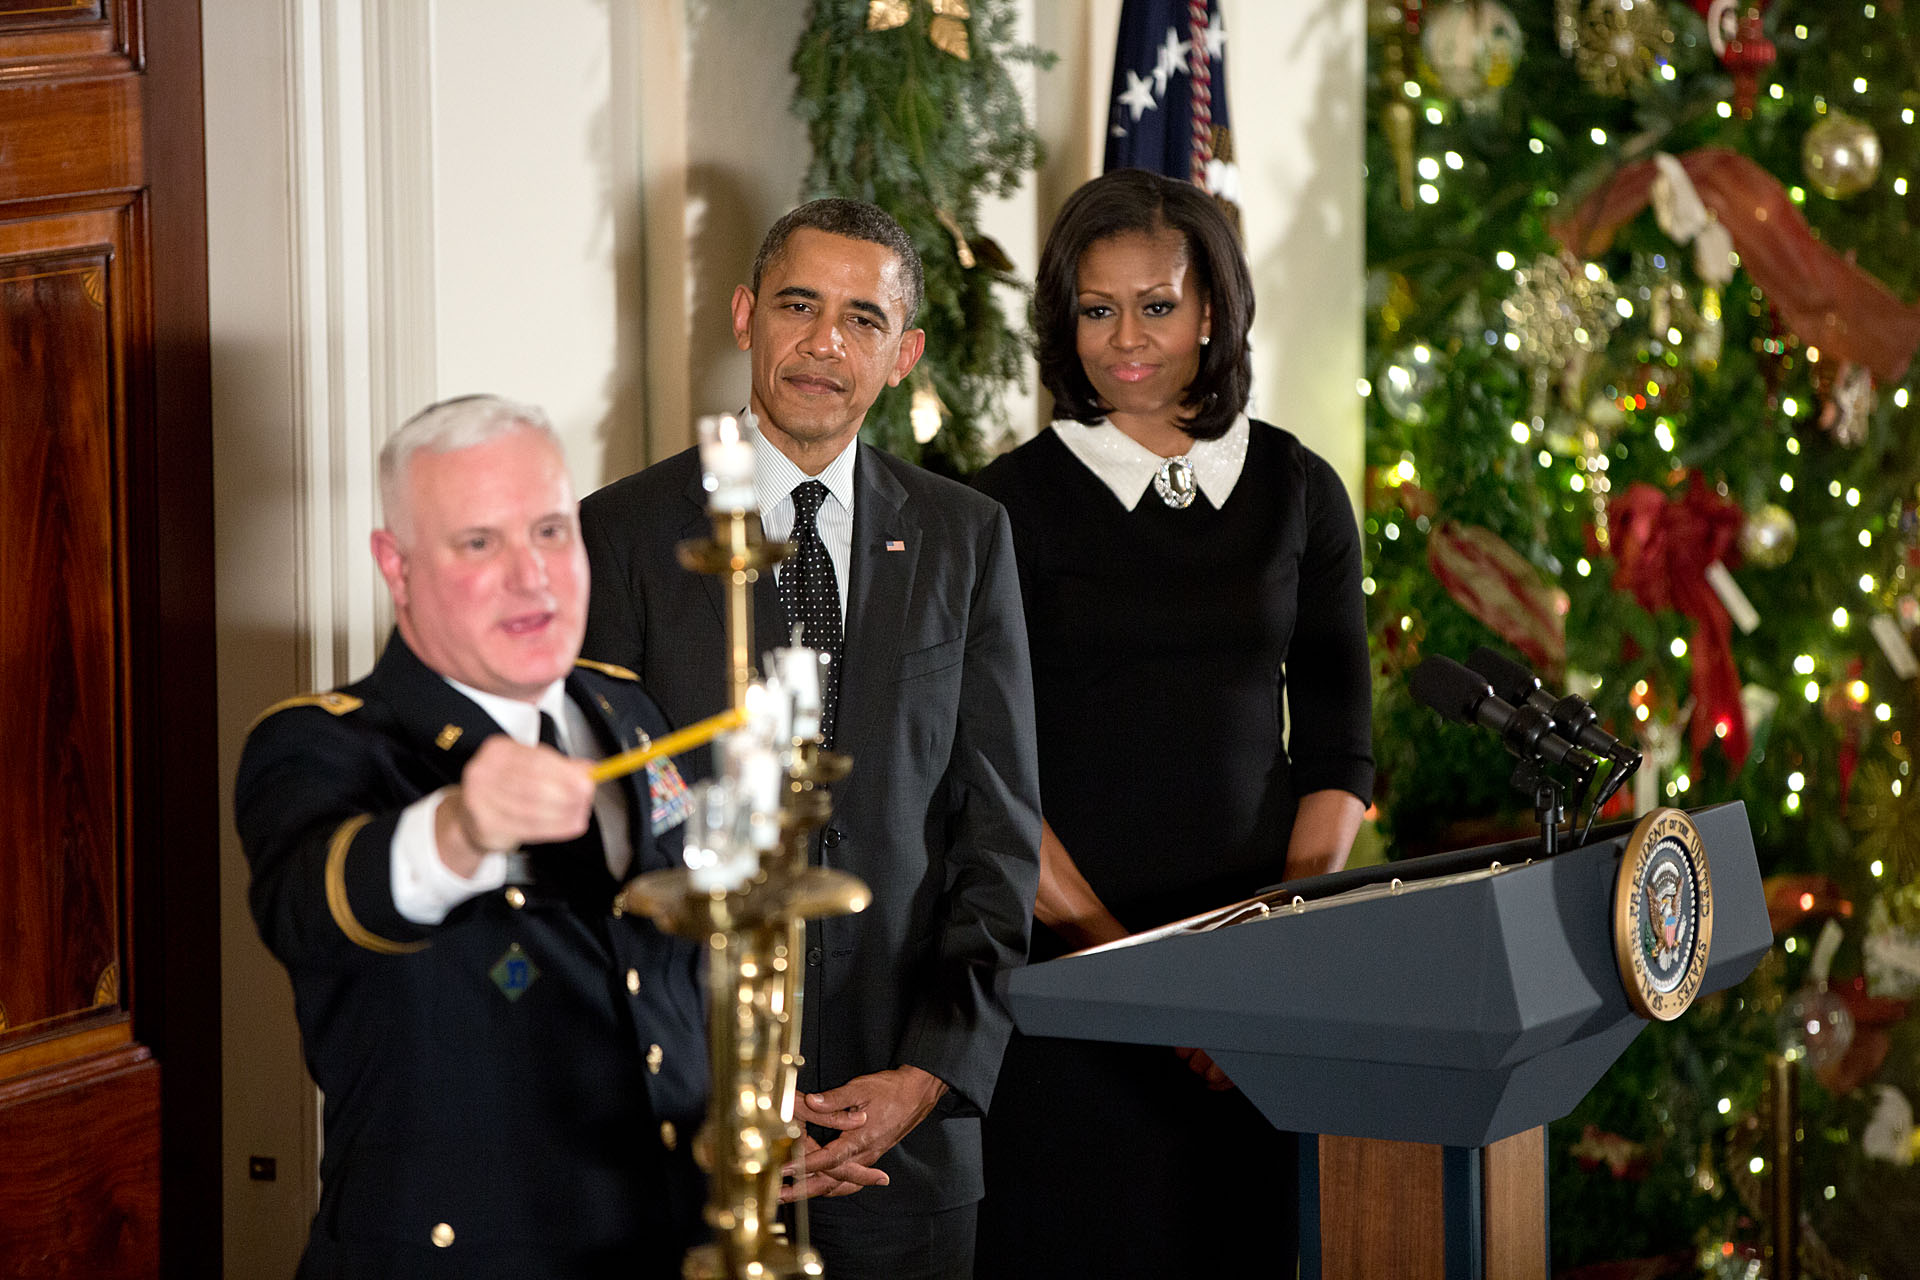 President Barack Obama, First Lady Michelle Obama, and Rabbi Larry Bazer participate in the Menorah lighting during the Hanukkah reception in the Grand Foyer of the White House, Dec. 13, 2012. (Official White House Photo by Pete Souza)